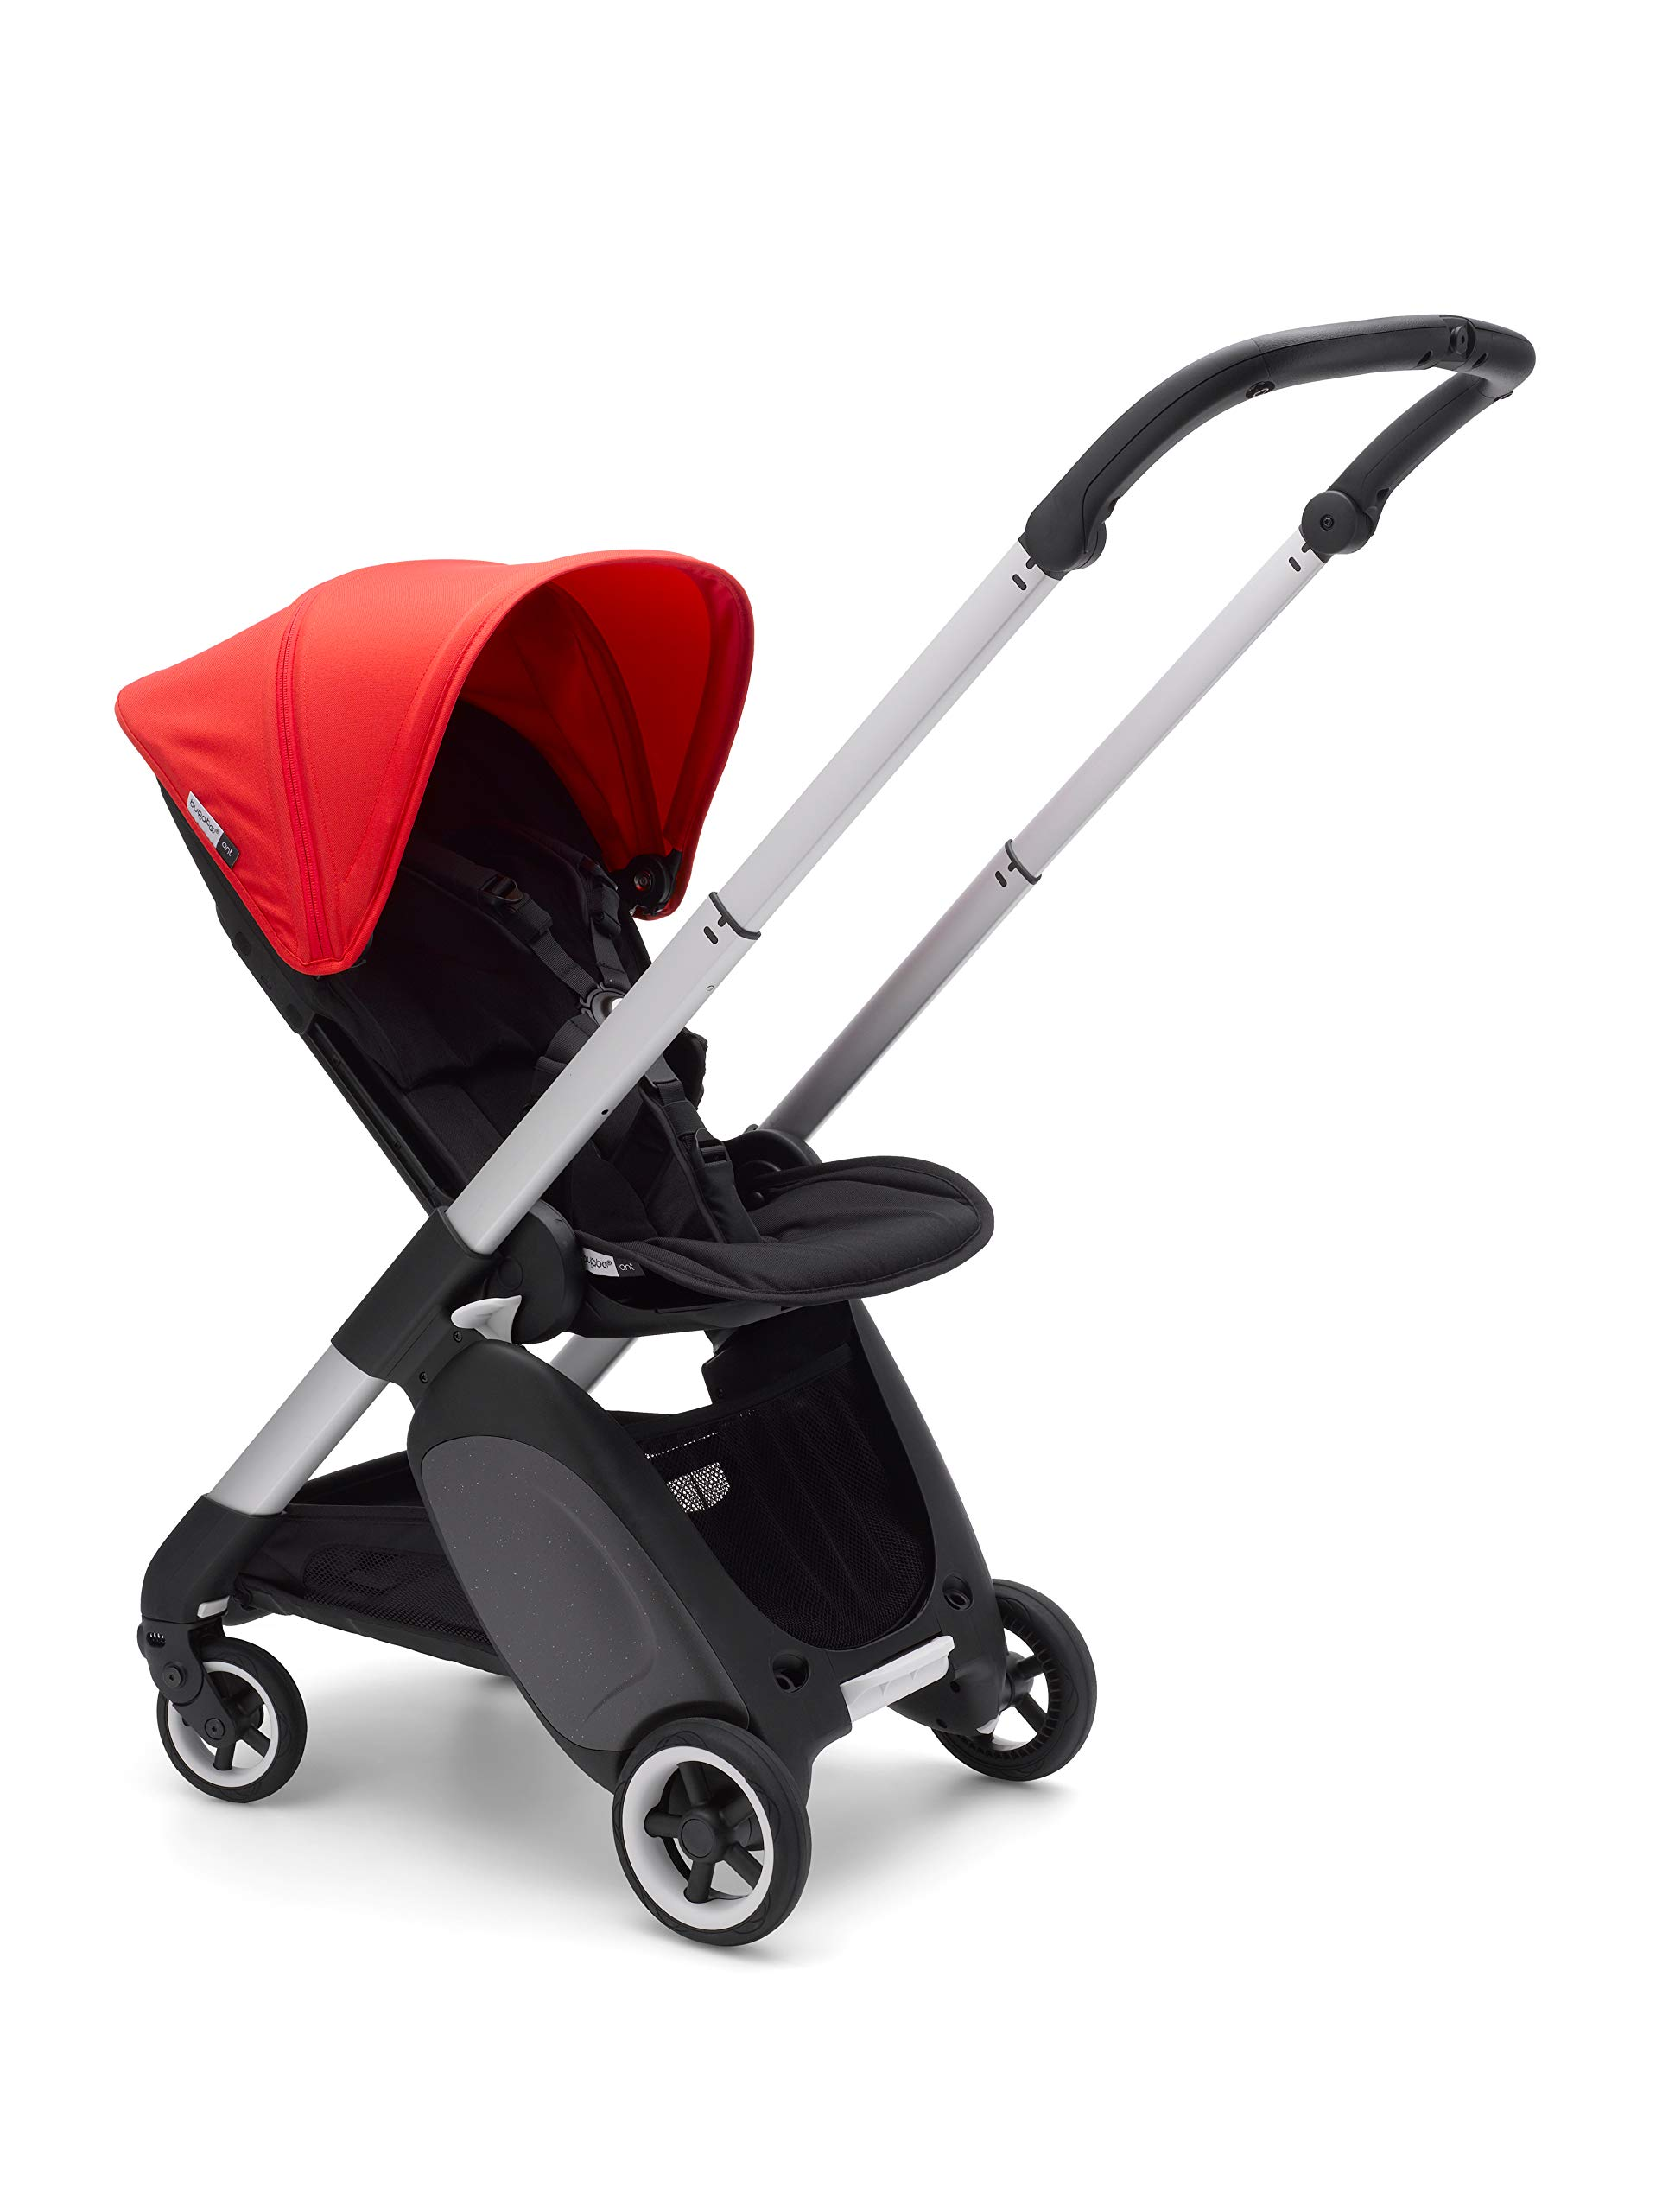 Bugaboo Ant, Lightweight Travel Pushchair with Compact Fold, Converts Into Pram, Black/Neon Red Bugaboo Suitable from birth to toddler Car seat compatible Lightweight and easy to carry 2